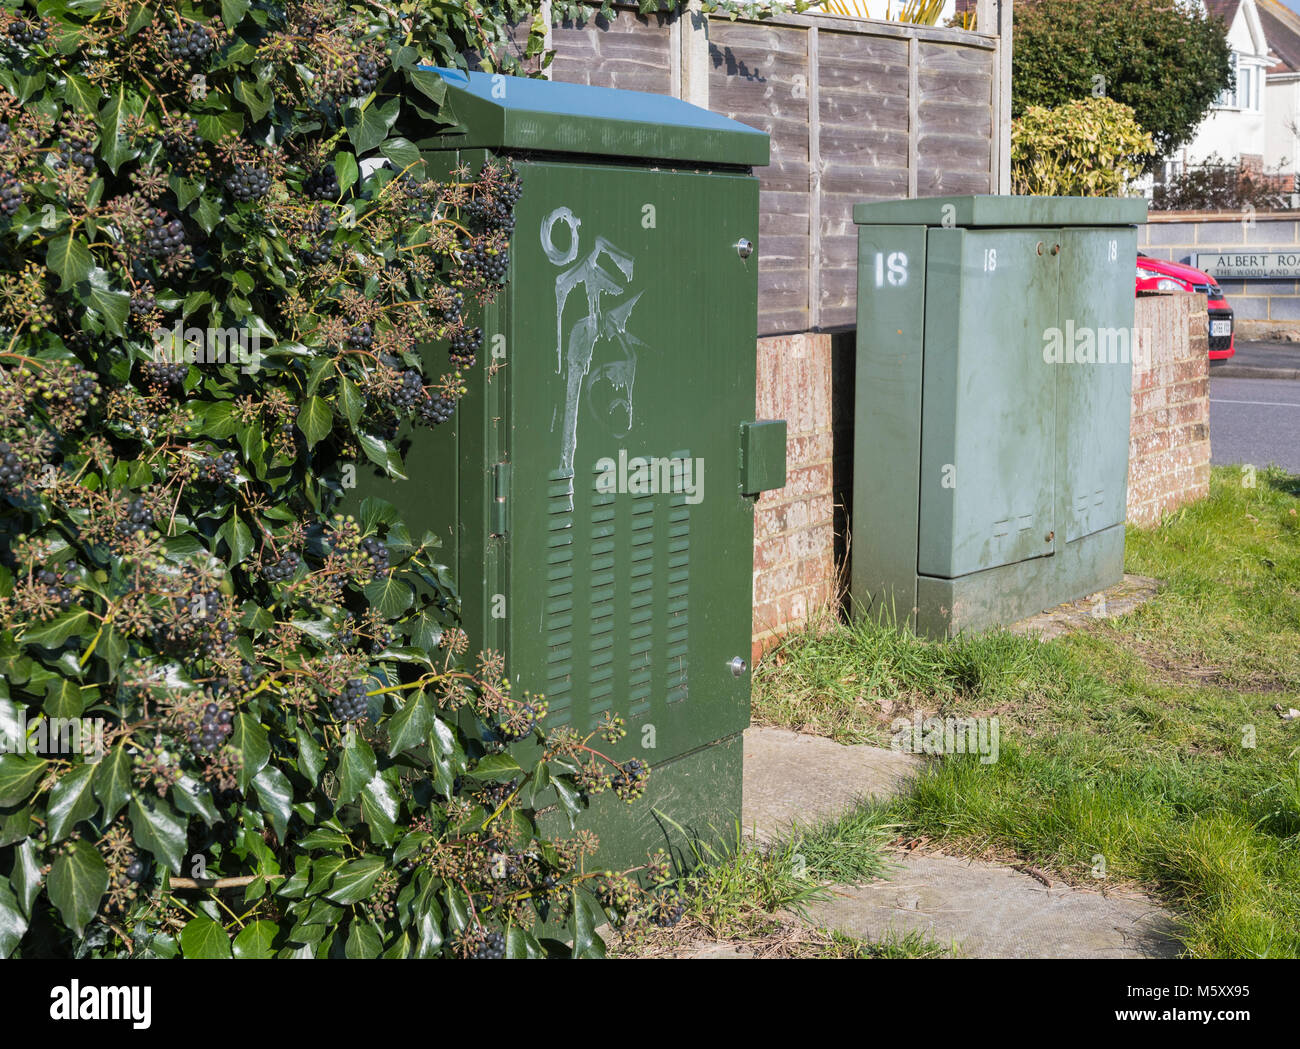 Pair of green British Telecom telephone cabinets on a street corner in England, UK. - Stock Image